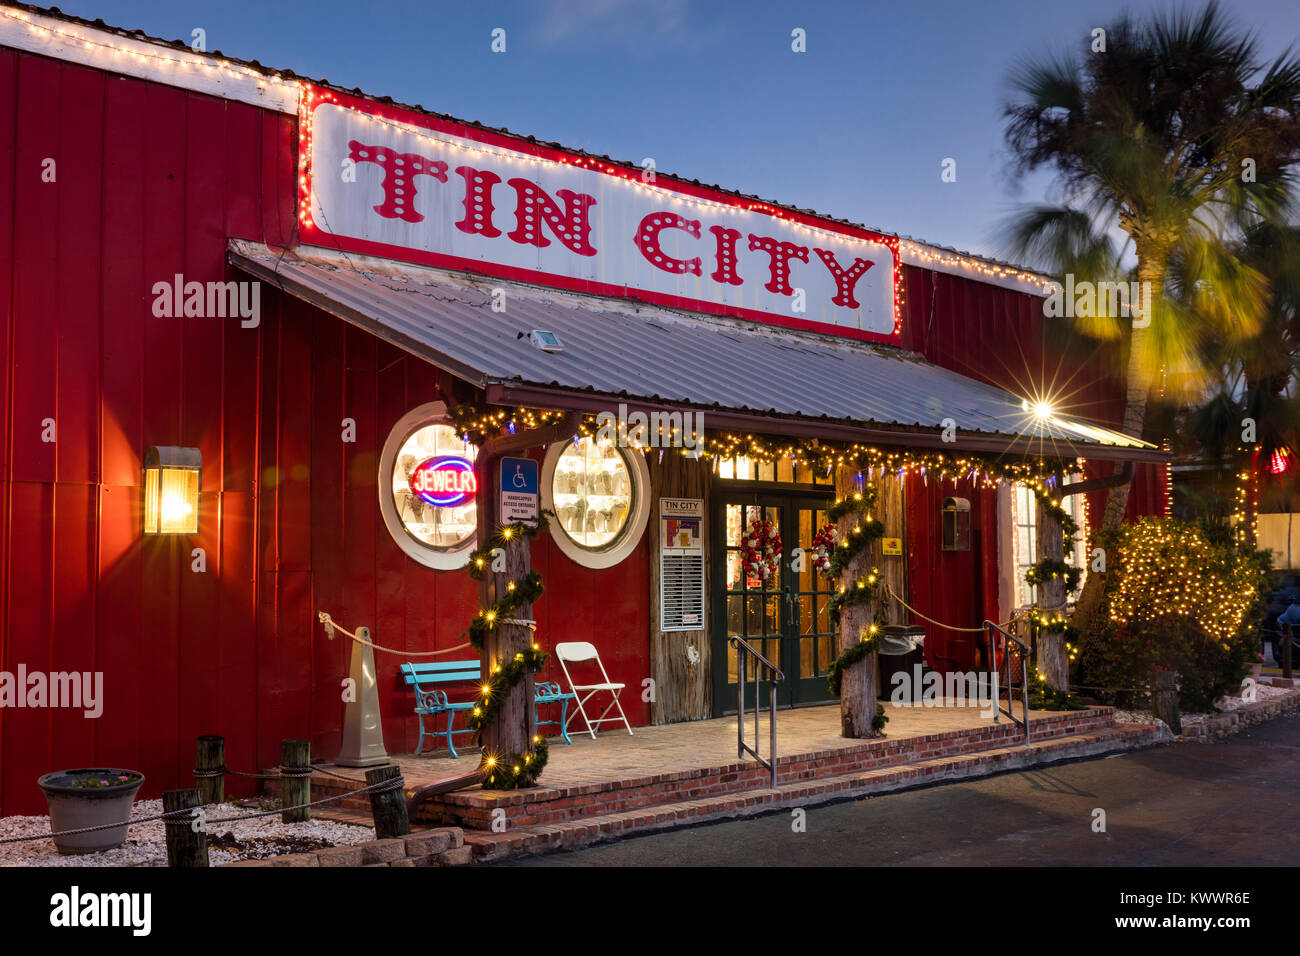 Mall entrance to the shops at Tin City - historic district, Naples, Florida, USA - Stock Image